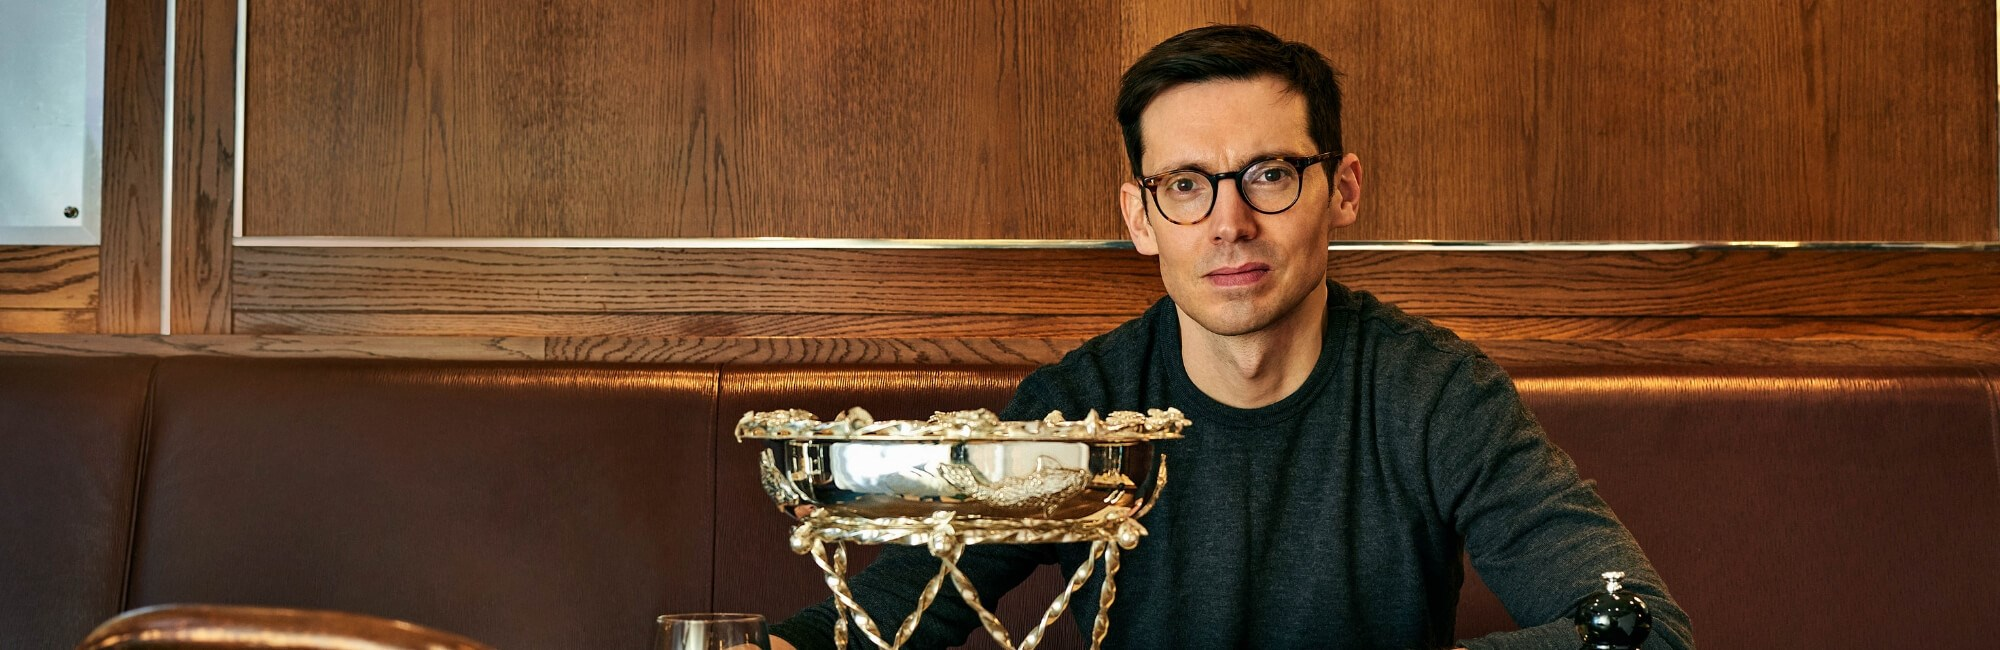 Fashion designer ERDEM at J Sheekey Atlantic Bar restaurant in Covent Garden